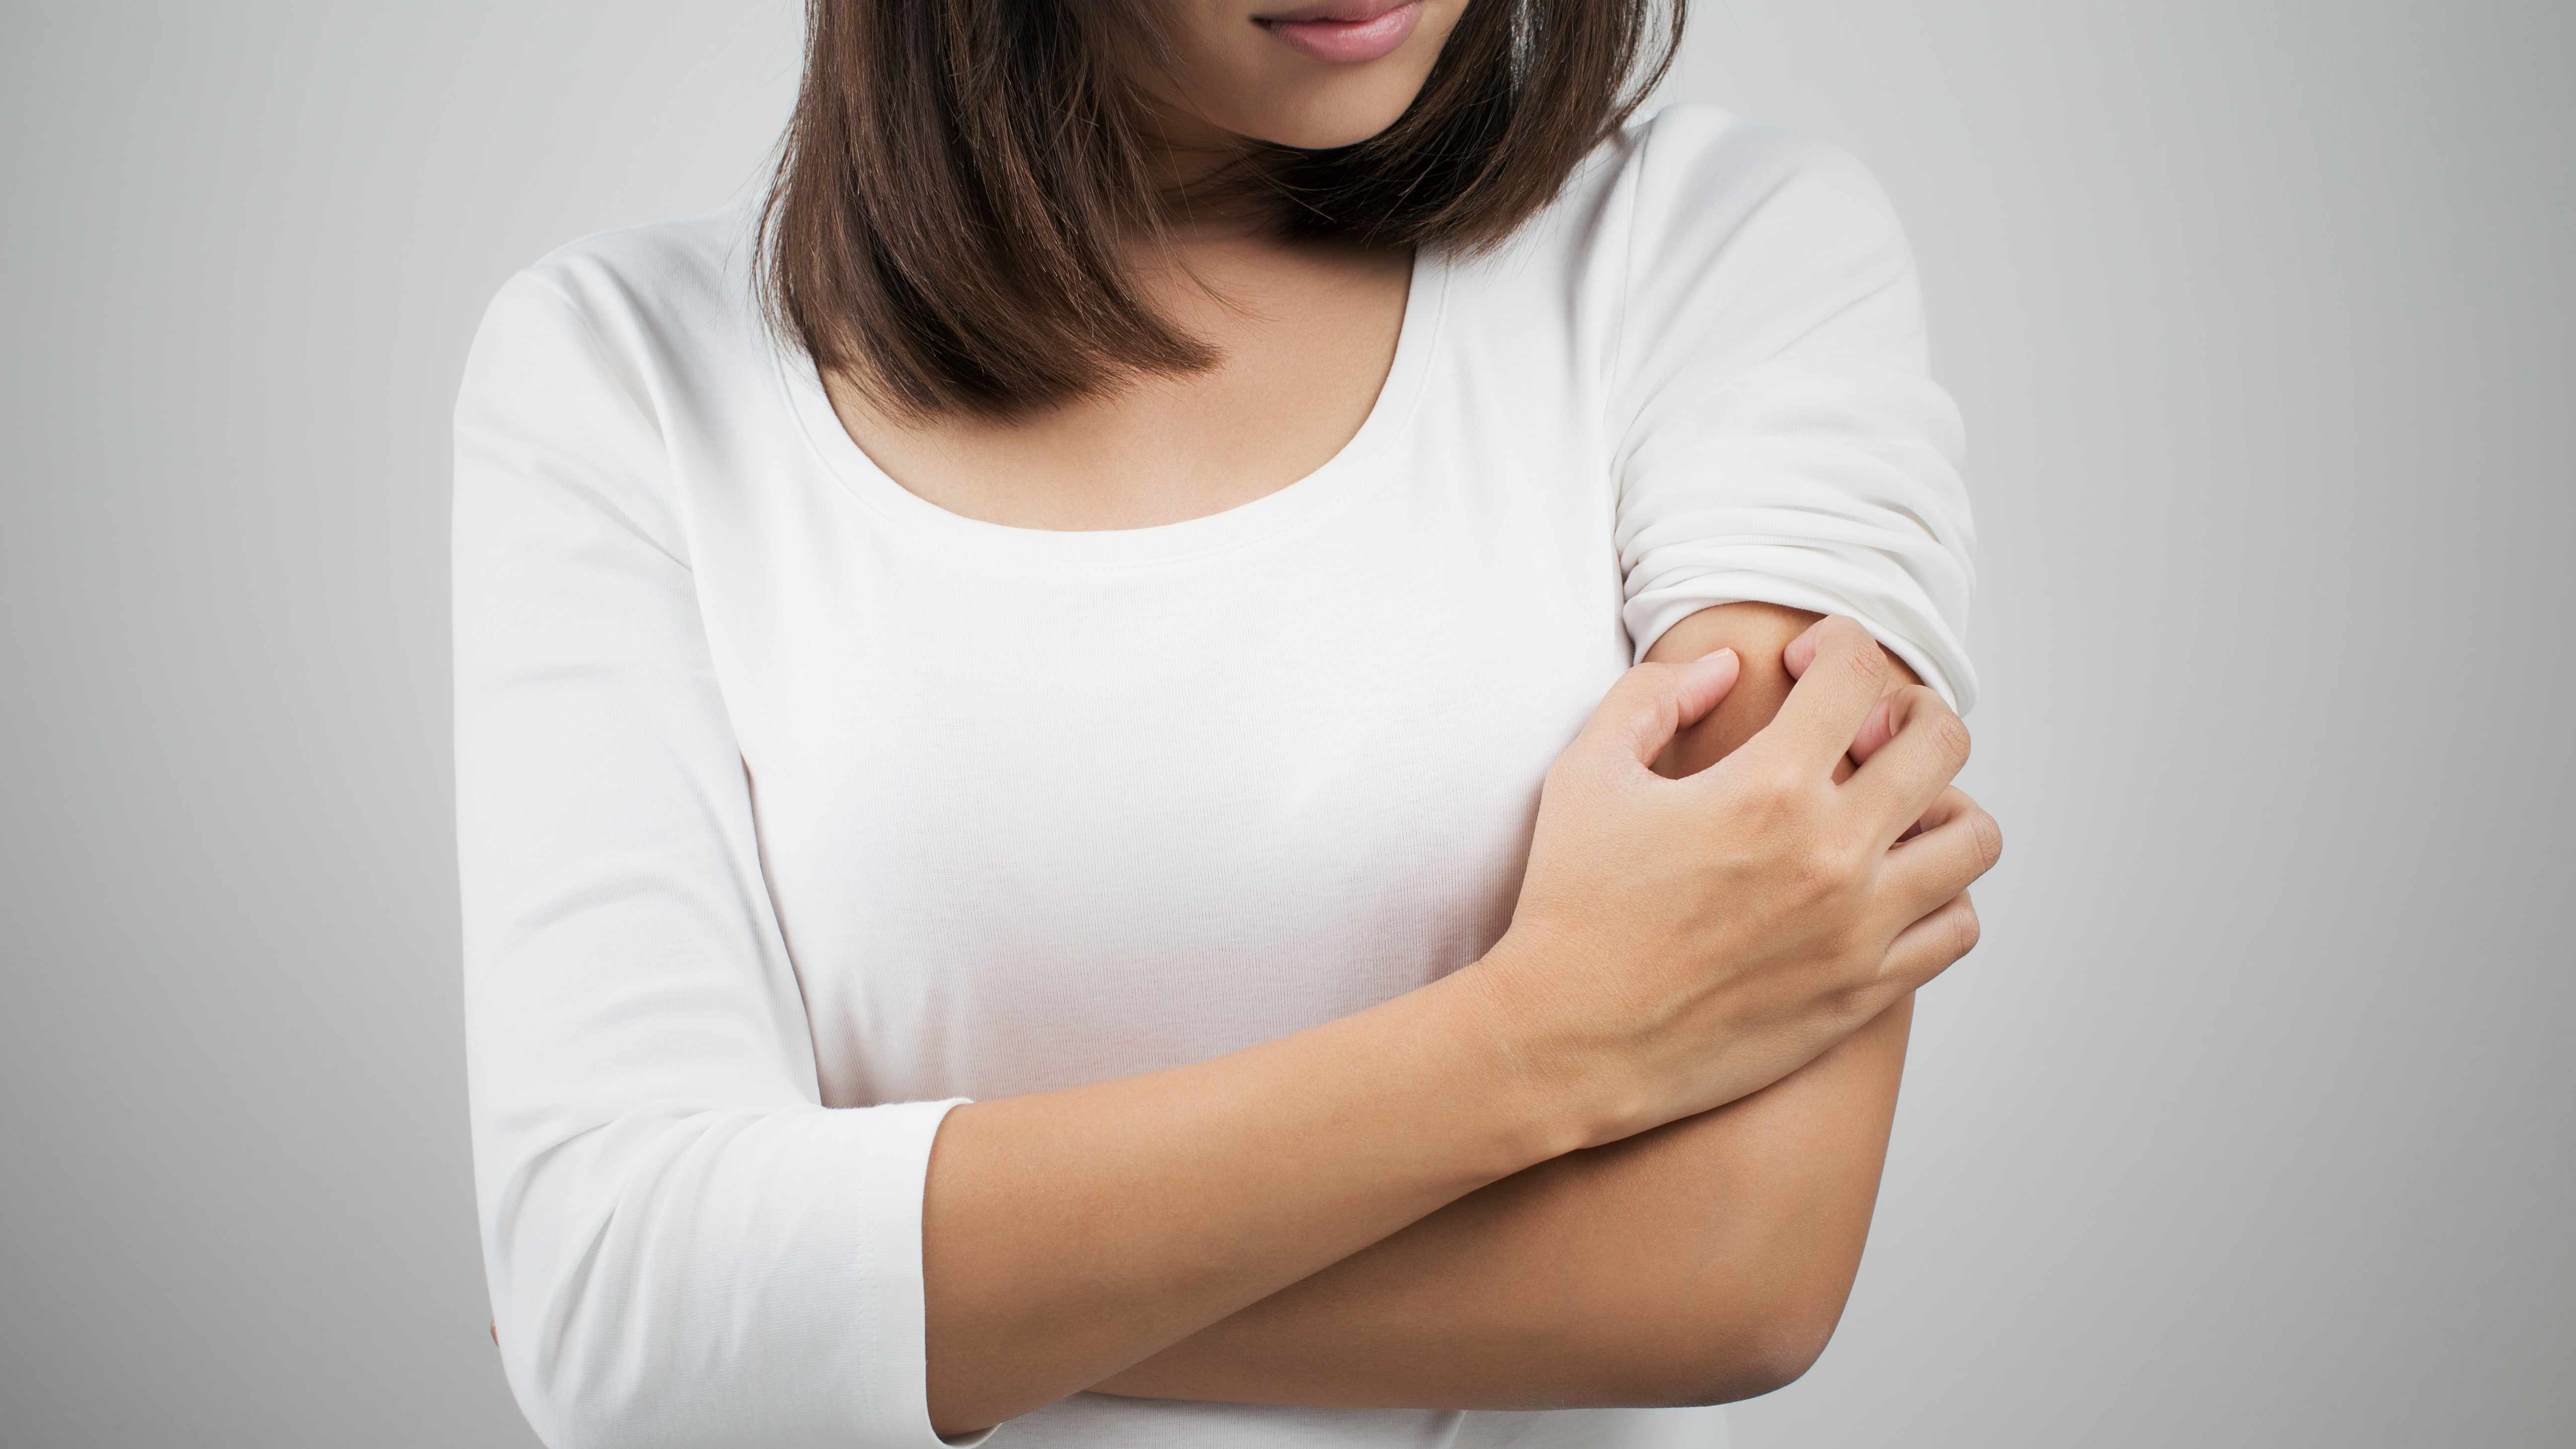 a woman scratching an itch on her arm